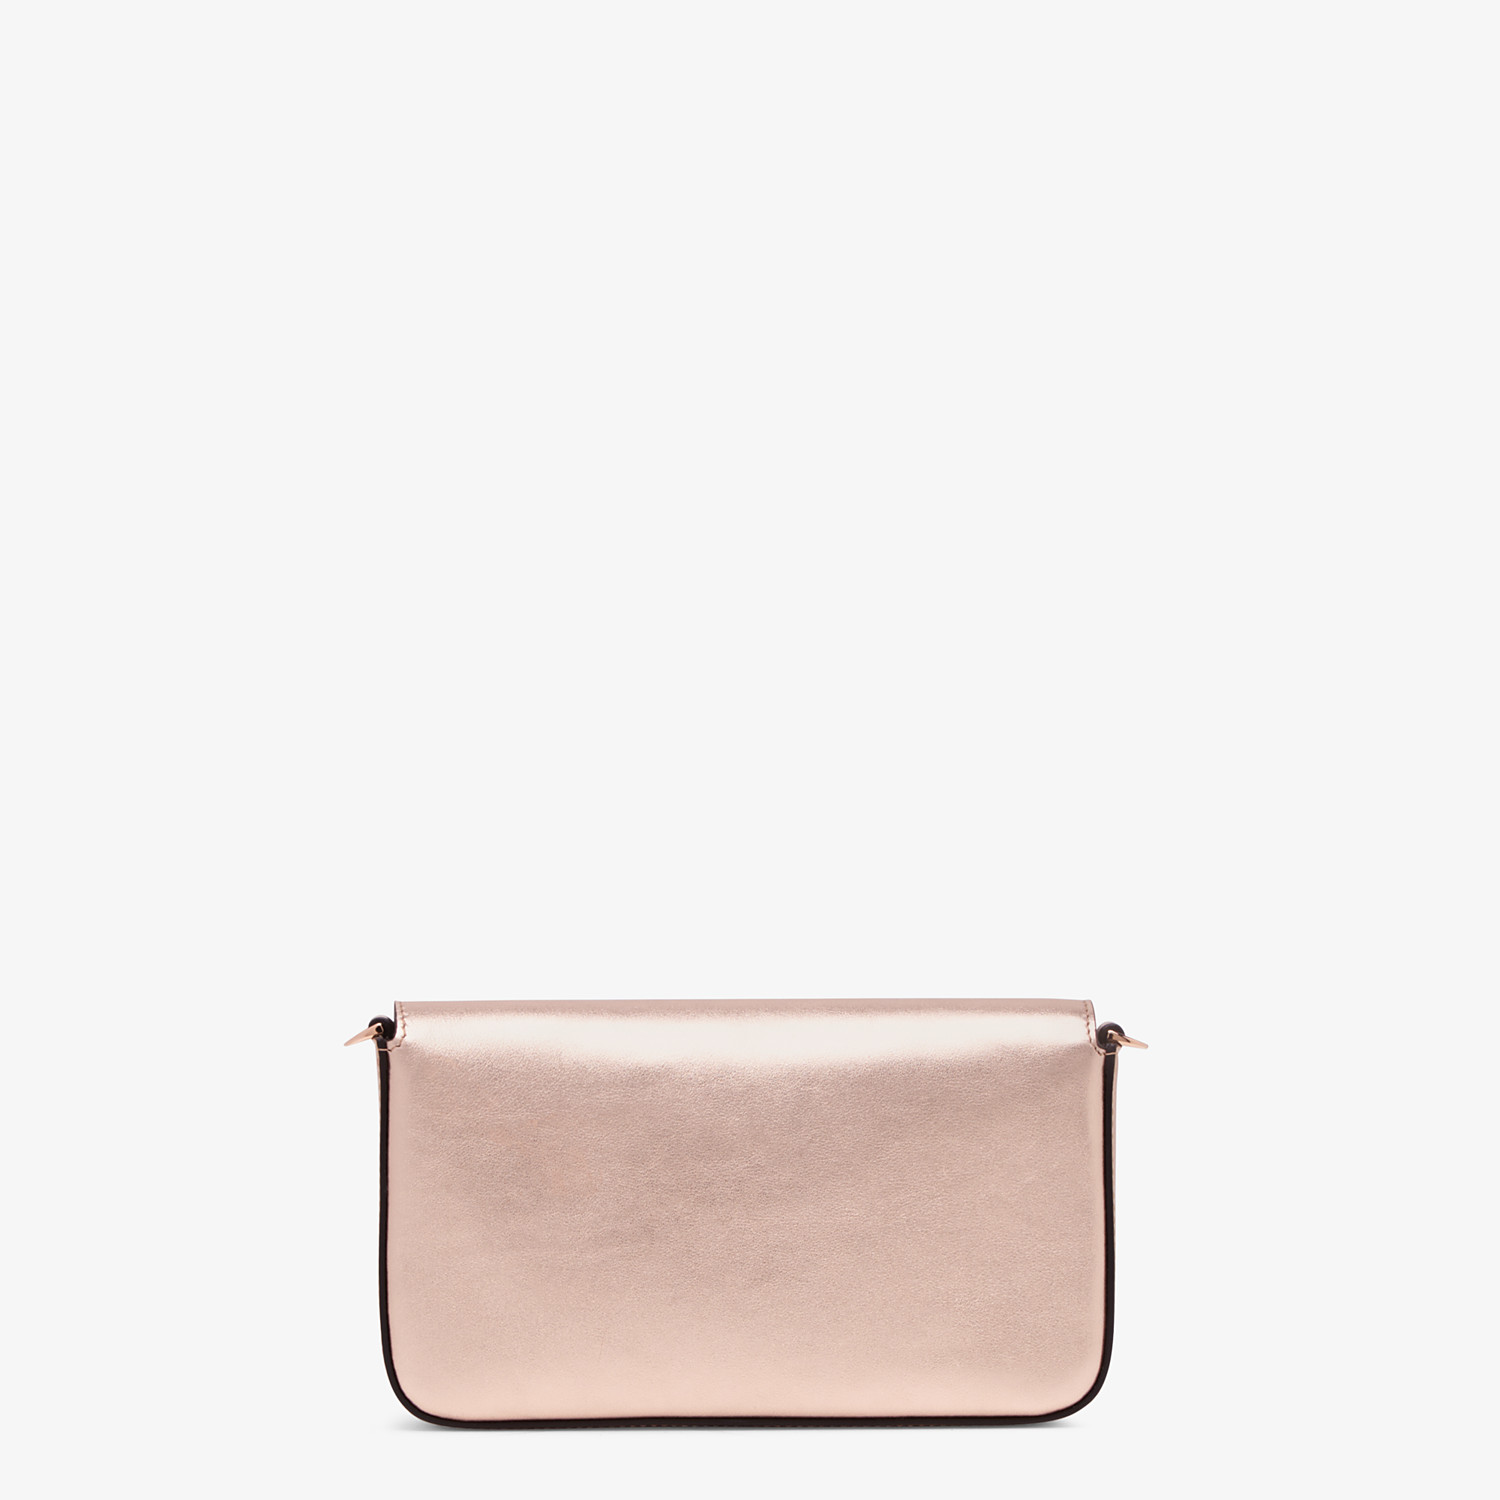 FENDI WALLET ON CHAIN WITH POUCHES - Pink leather mini-bag - view 4 detail